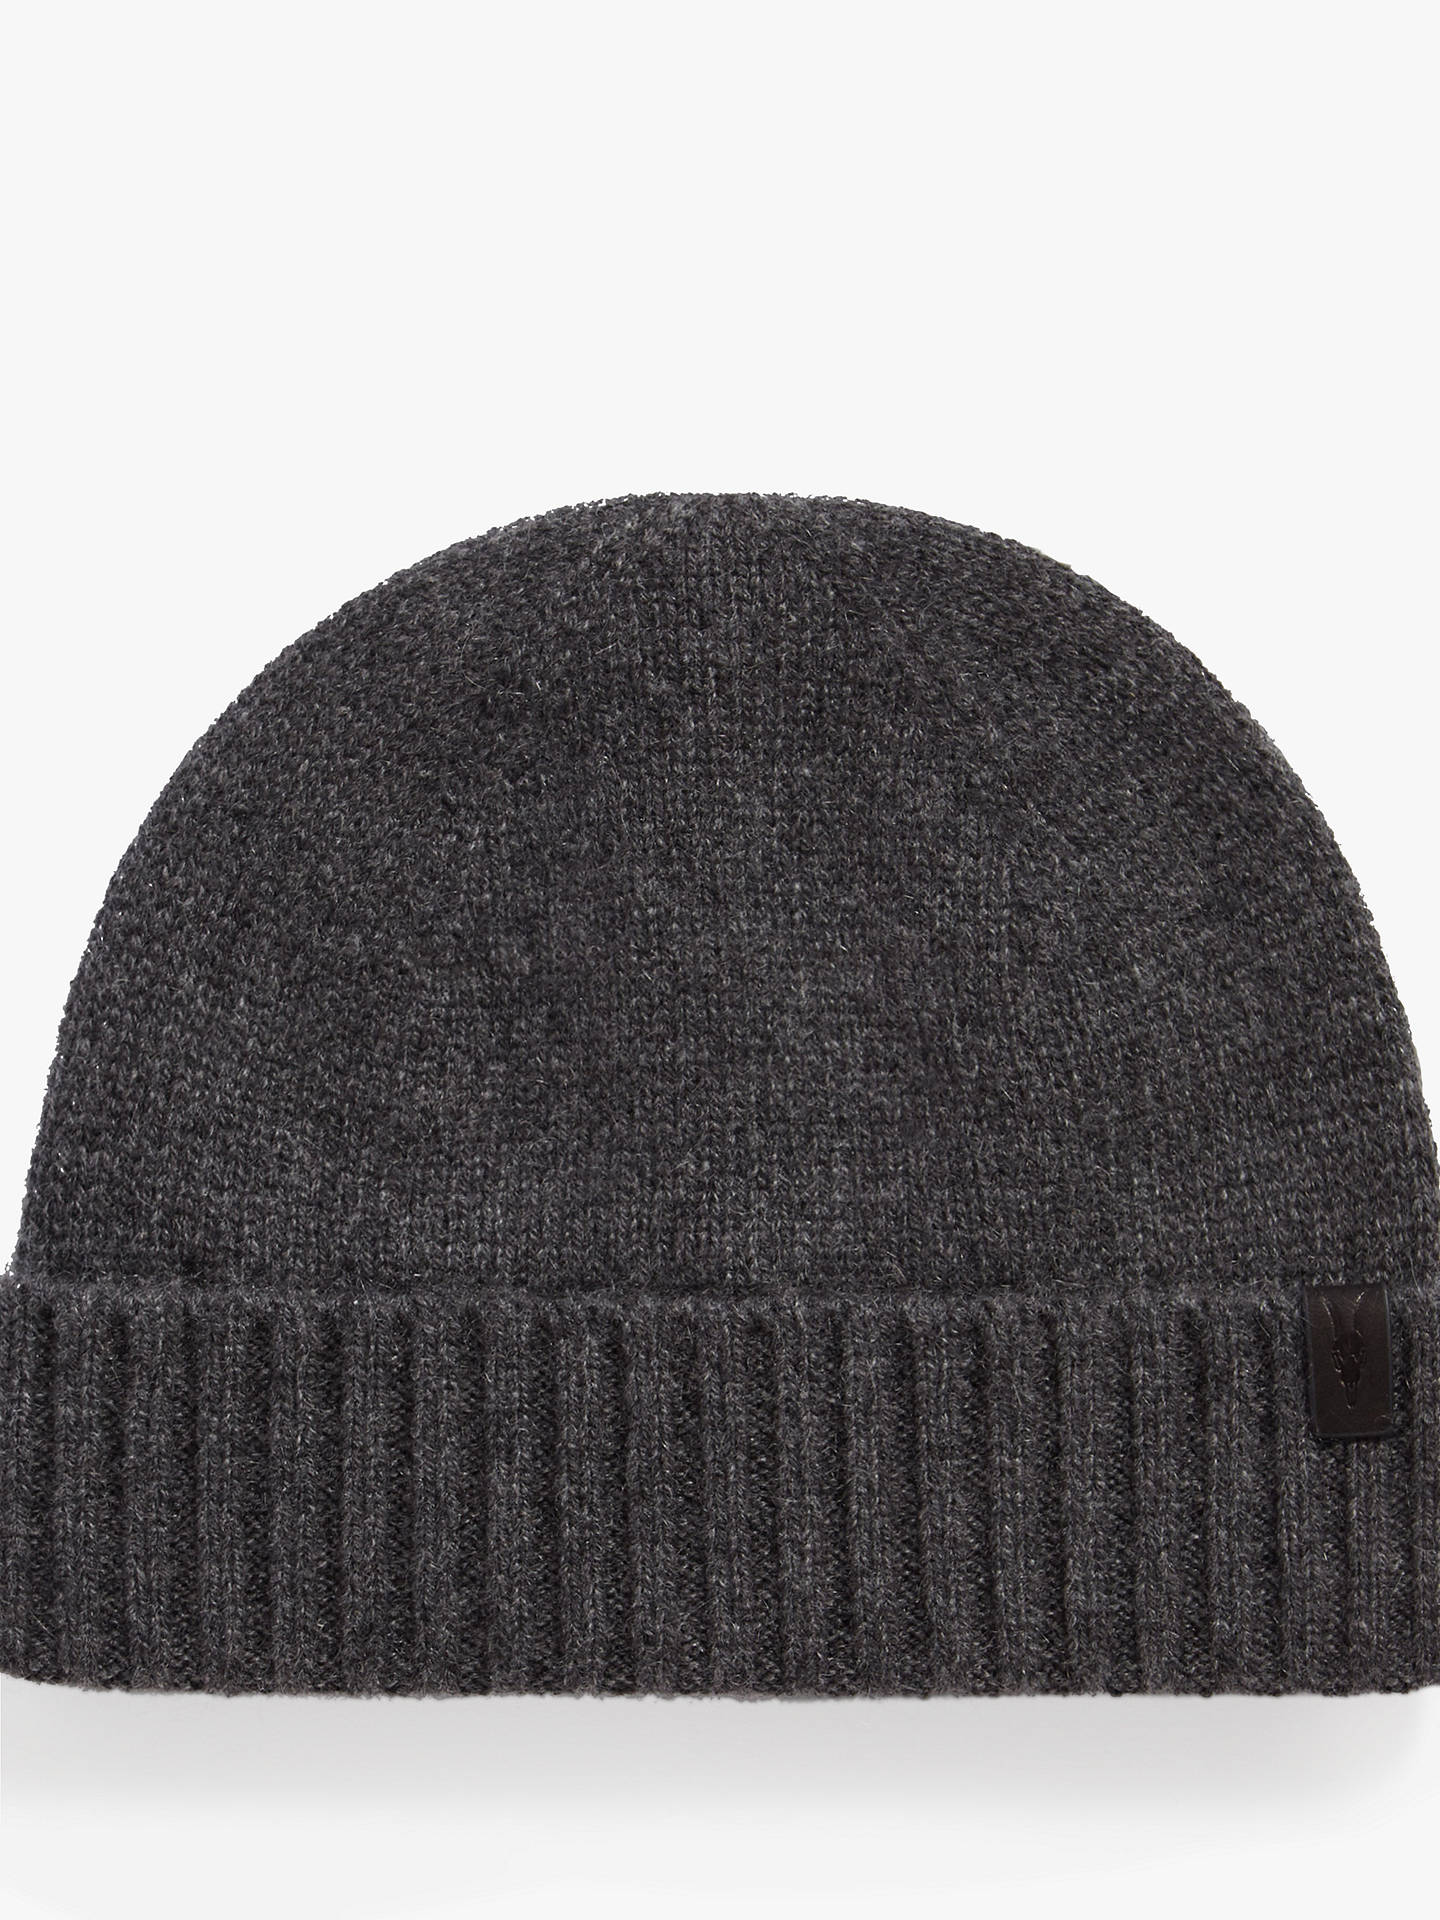 AllSaints Solid Cashmere Beanie Hat at John Lewis   Partners 2b3cd4e48fa